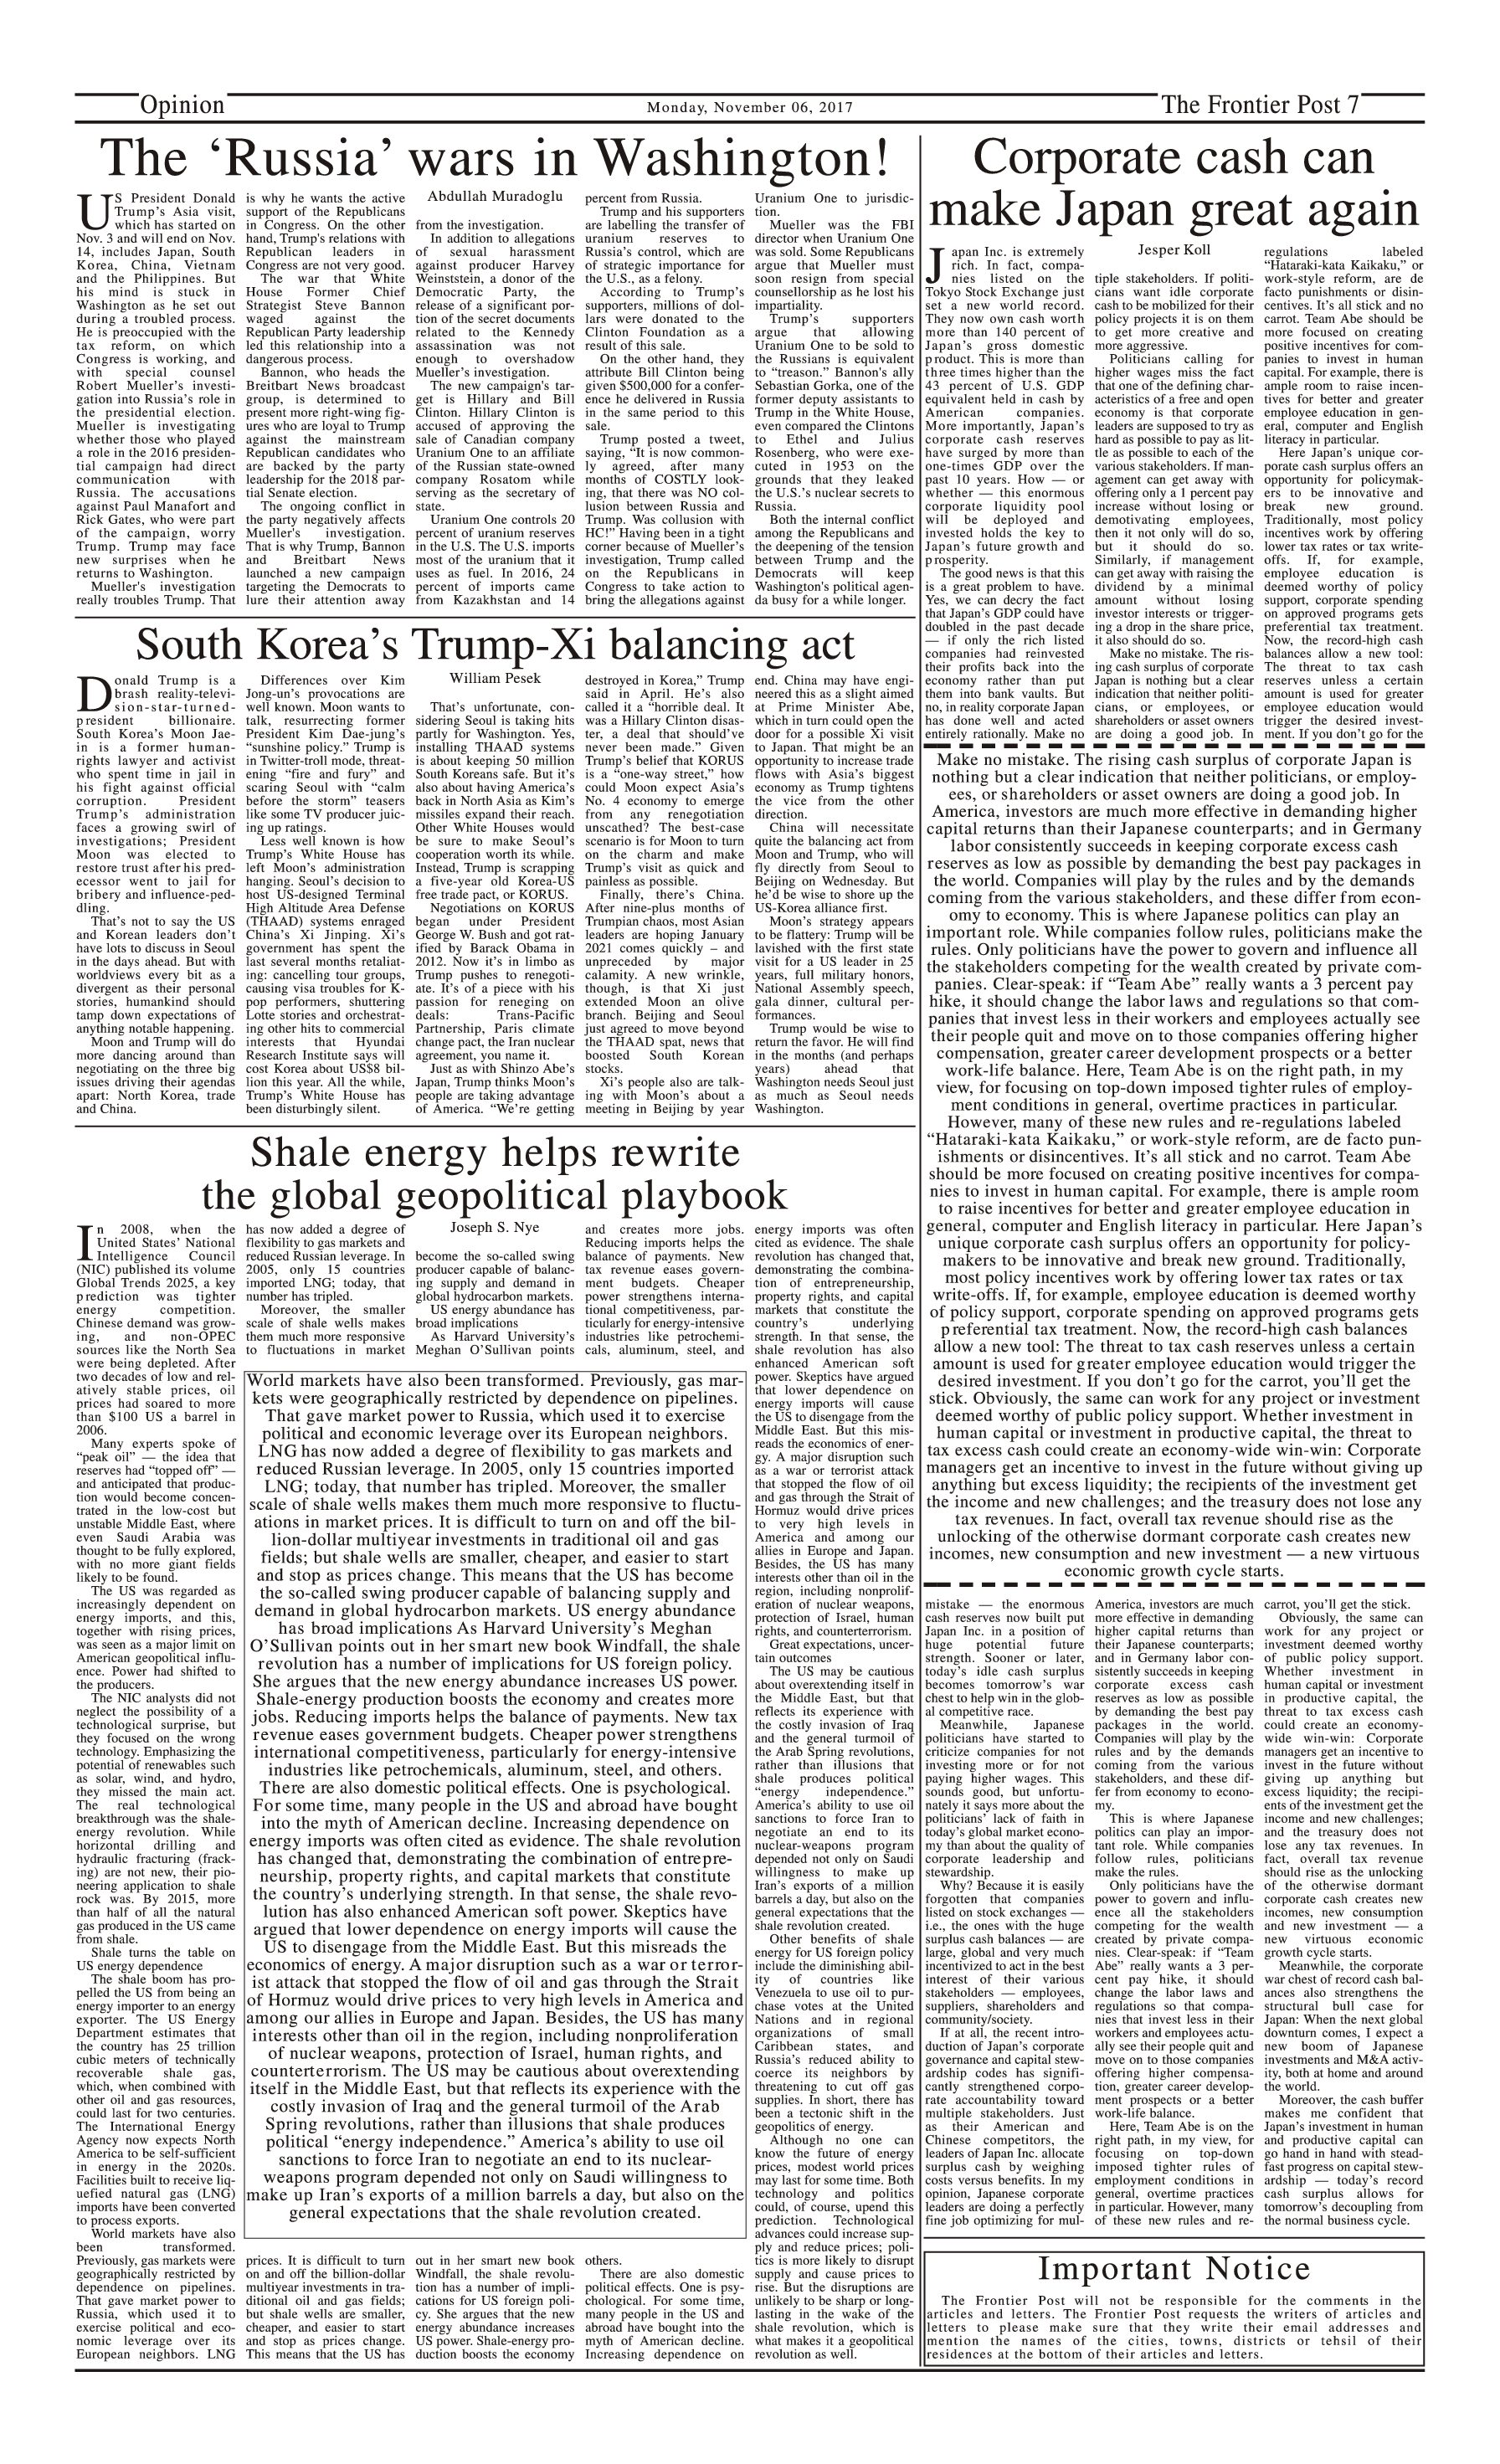 Opinion Page 6-11